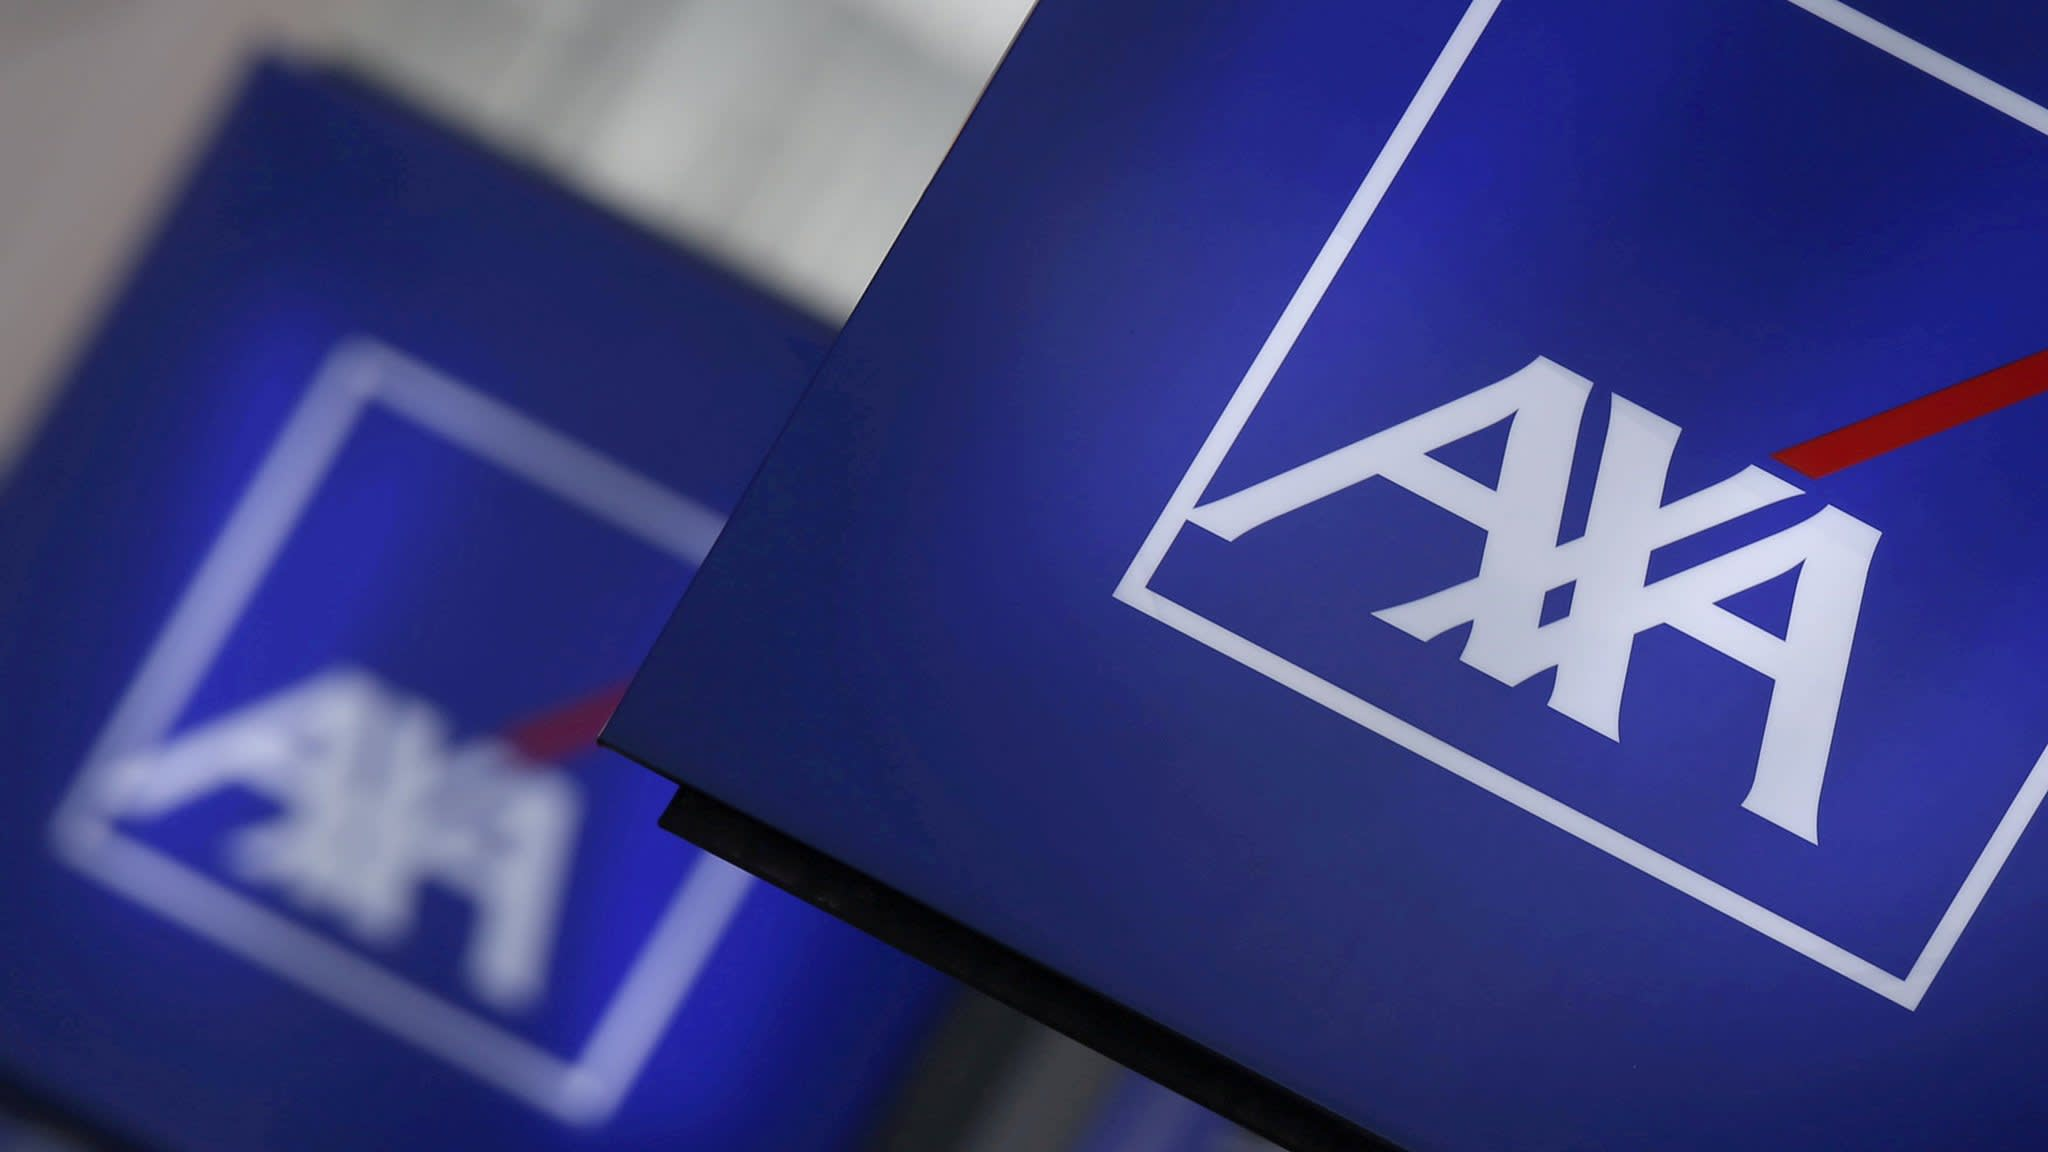 French insurer Axa in talks to buy XL Group